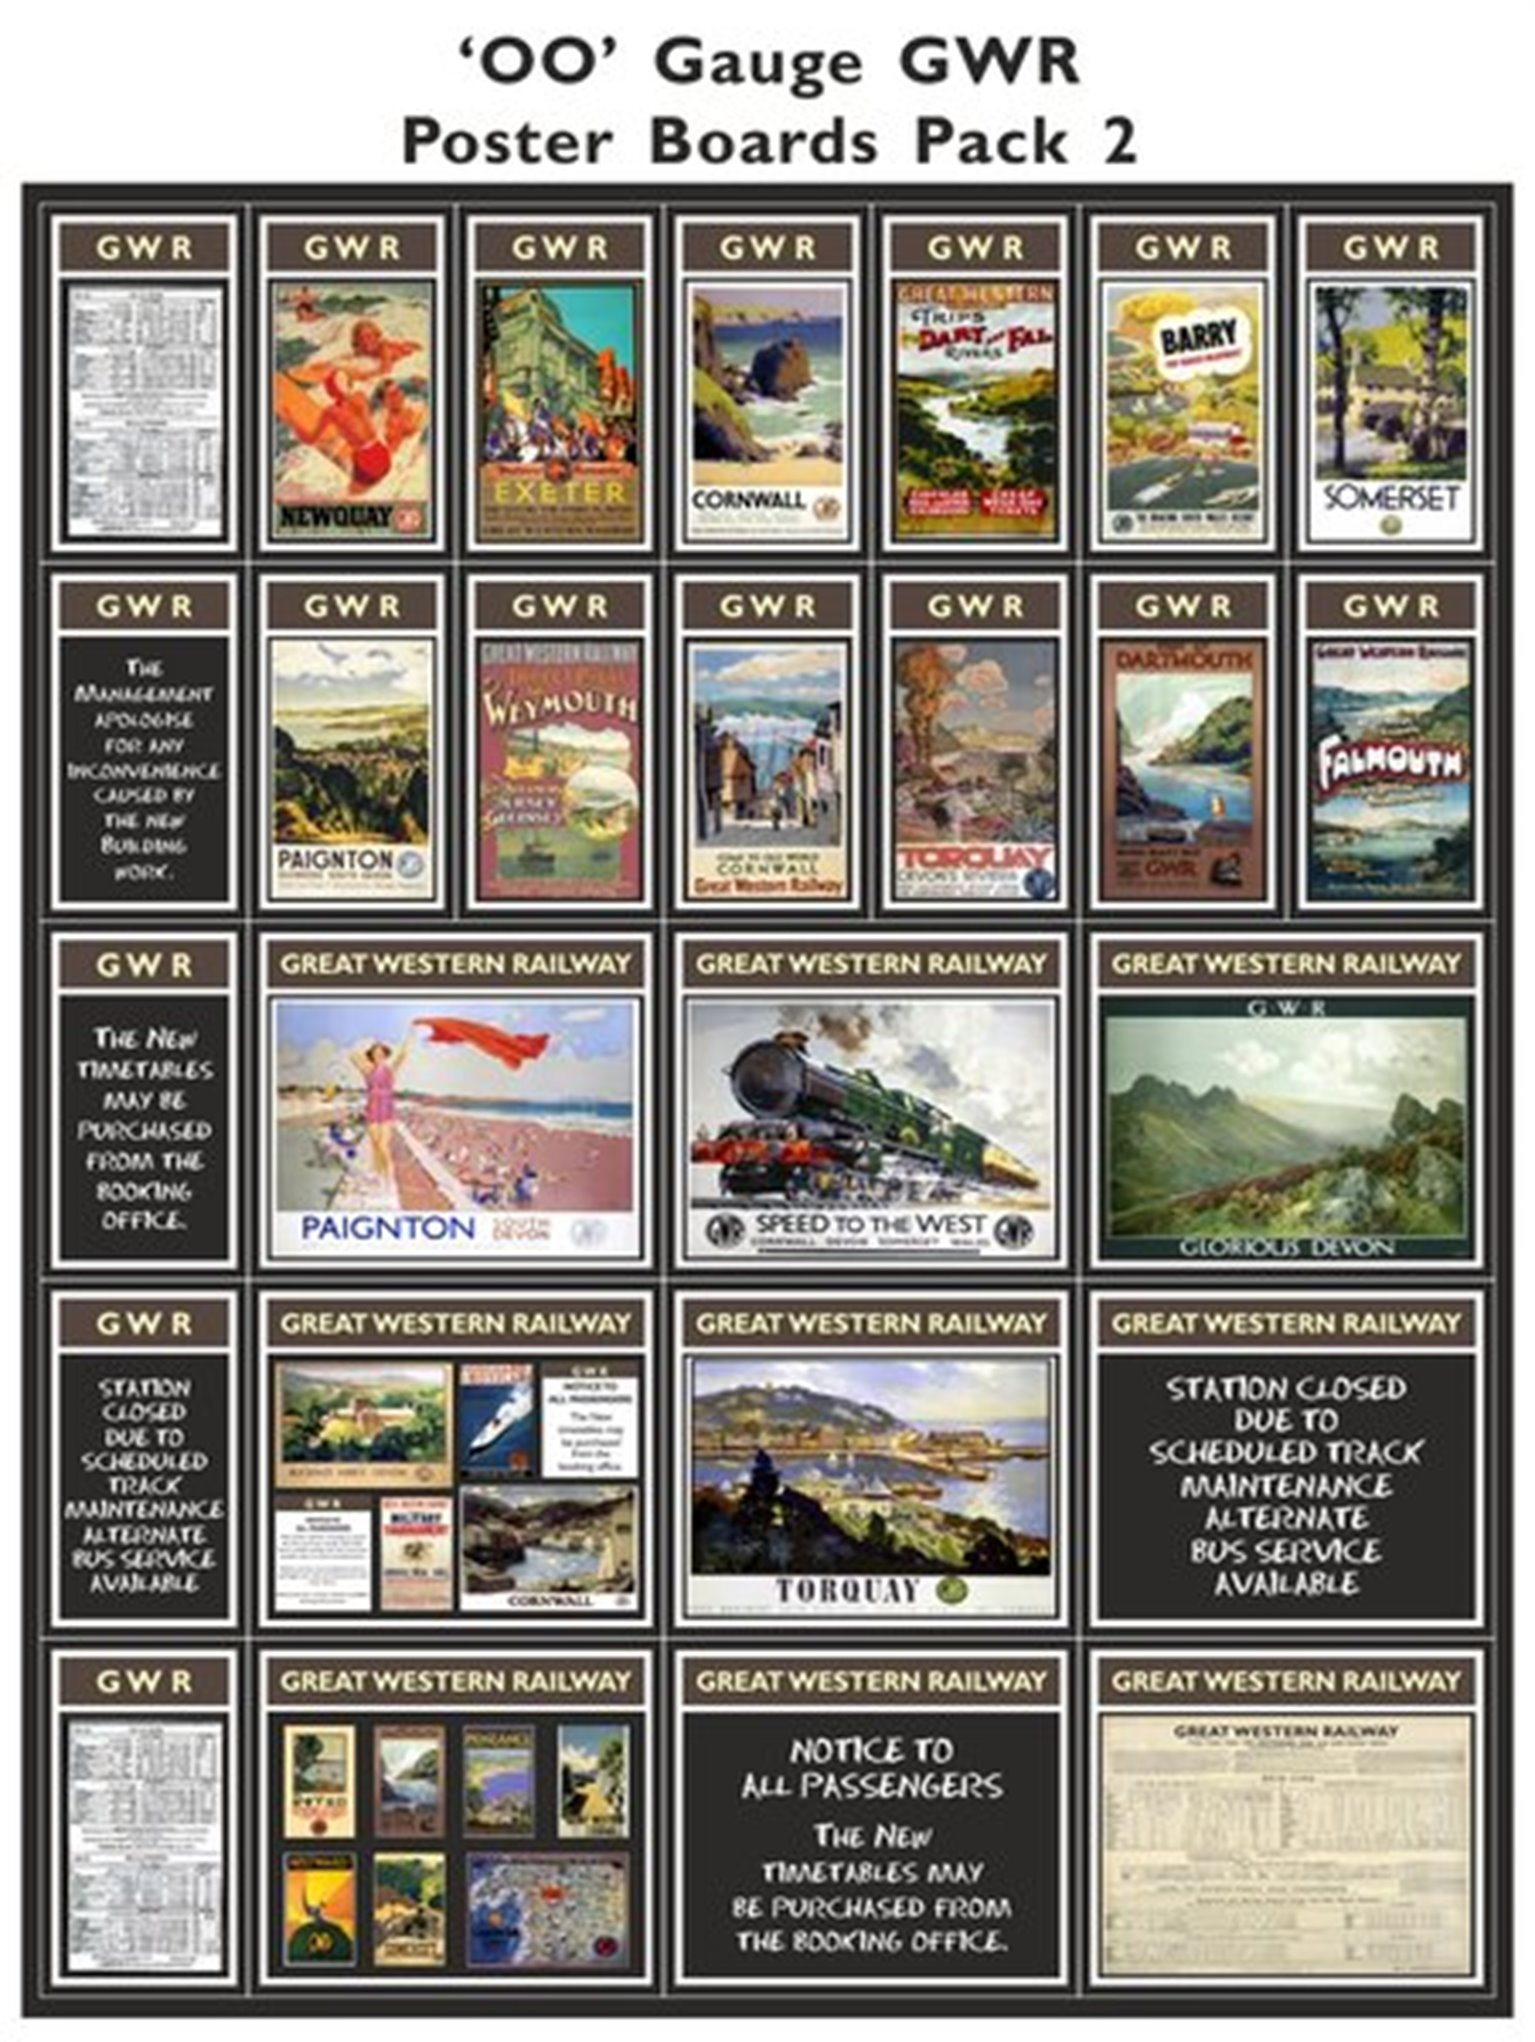 GWR Poster Boards Pack 2